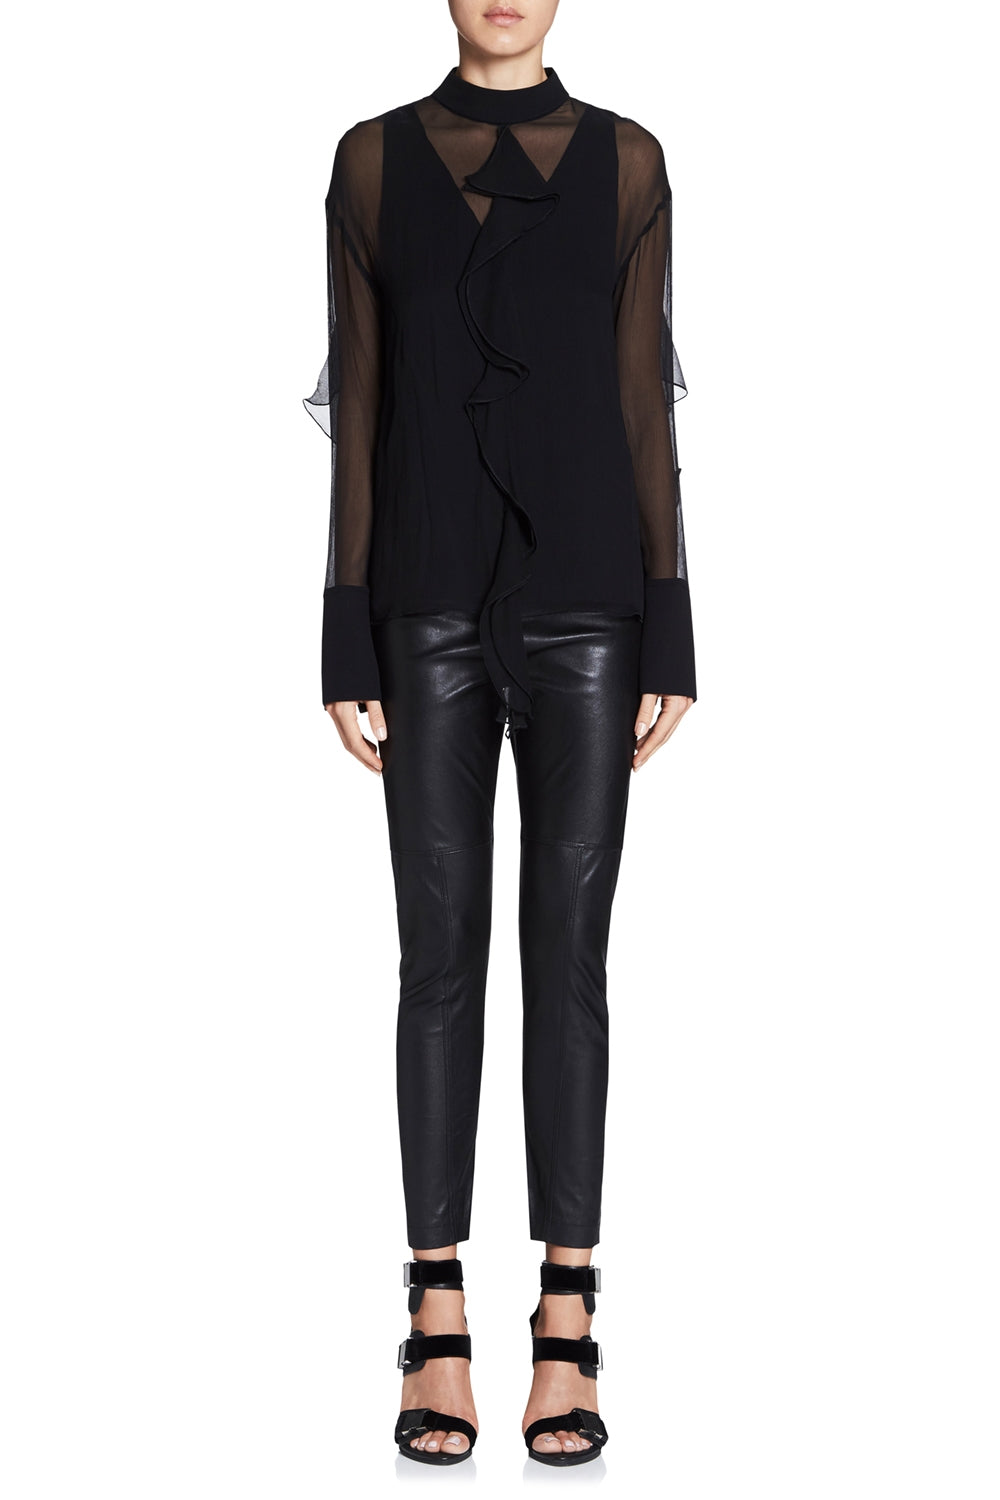 DIGITAL DASH LEATHER PANT